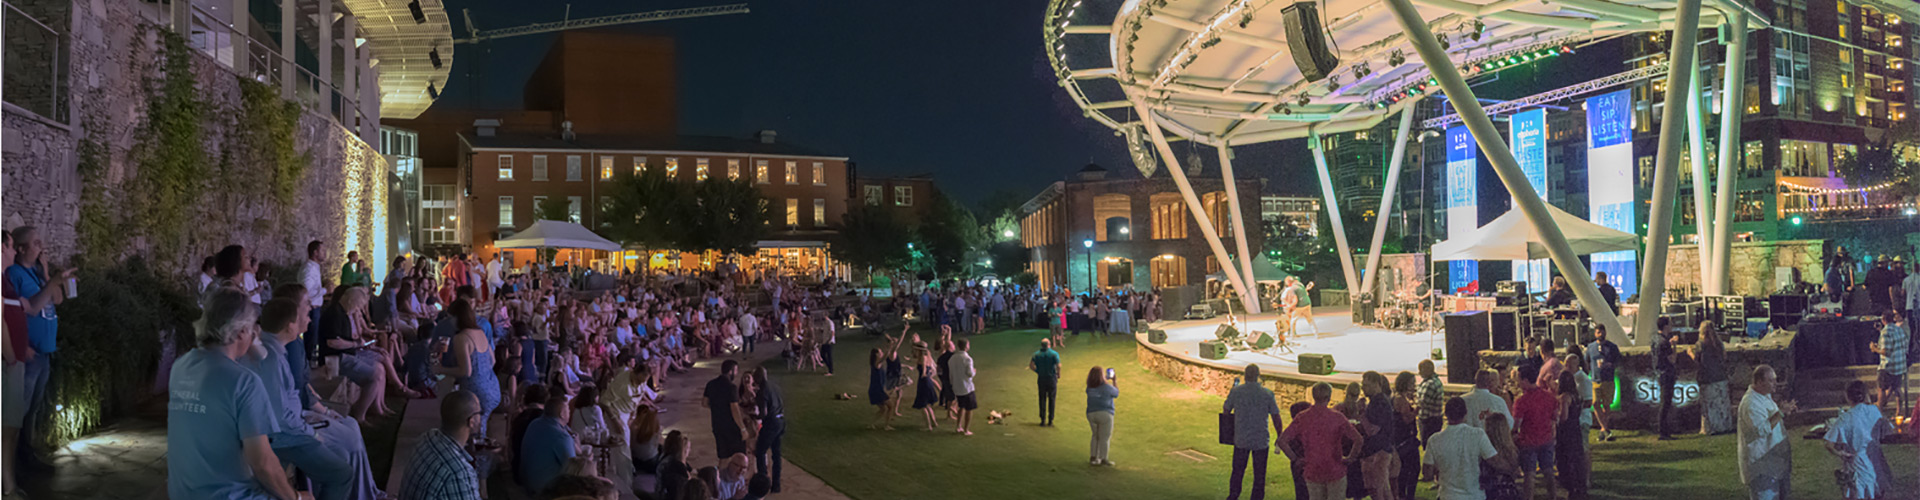 Greenville's euphoria food festival is this weekend and it's not too late to snag a ticket